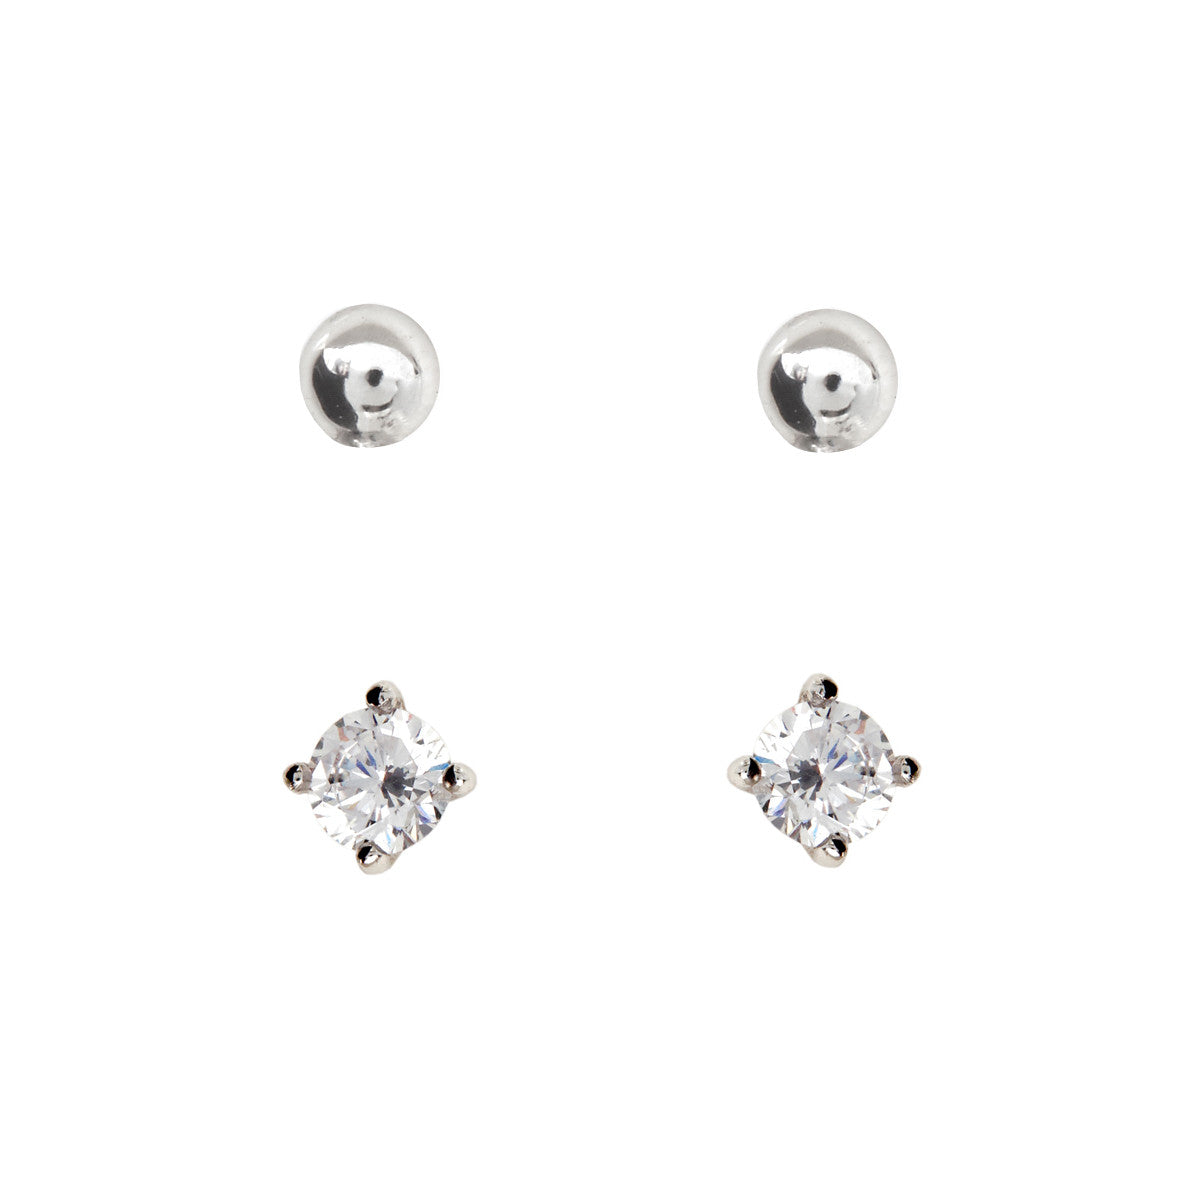 2mm Silver Cubic Zirconia & Ball Stud Pack